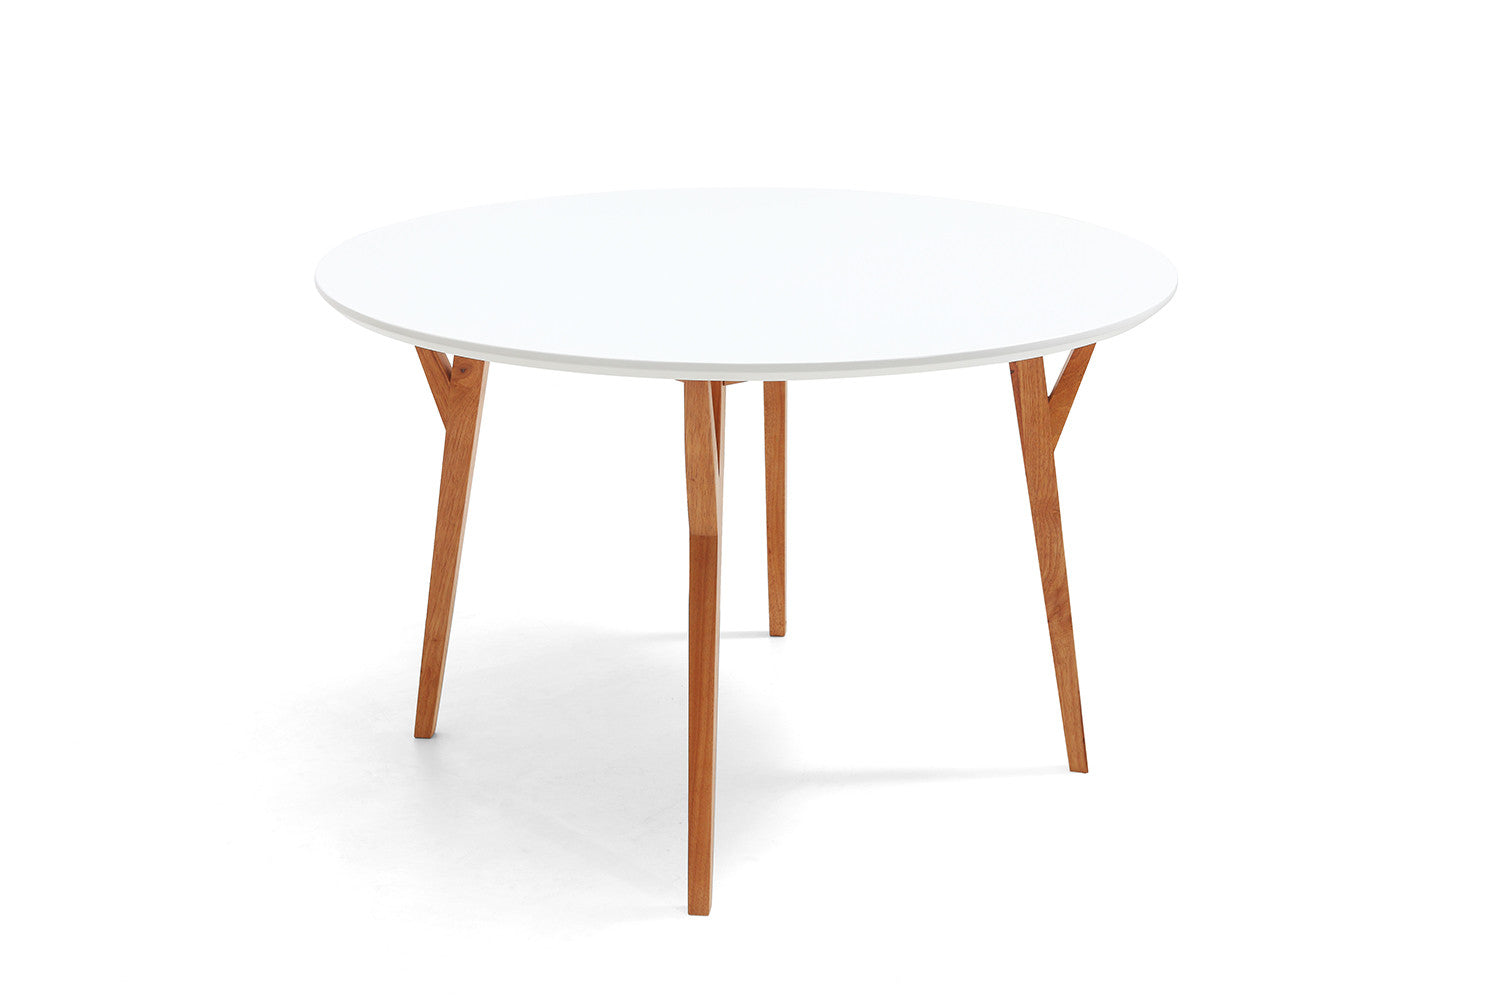 Table de salle manger ronde design scandinave moesa dewarens - Table ronde a manger ...